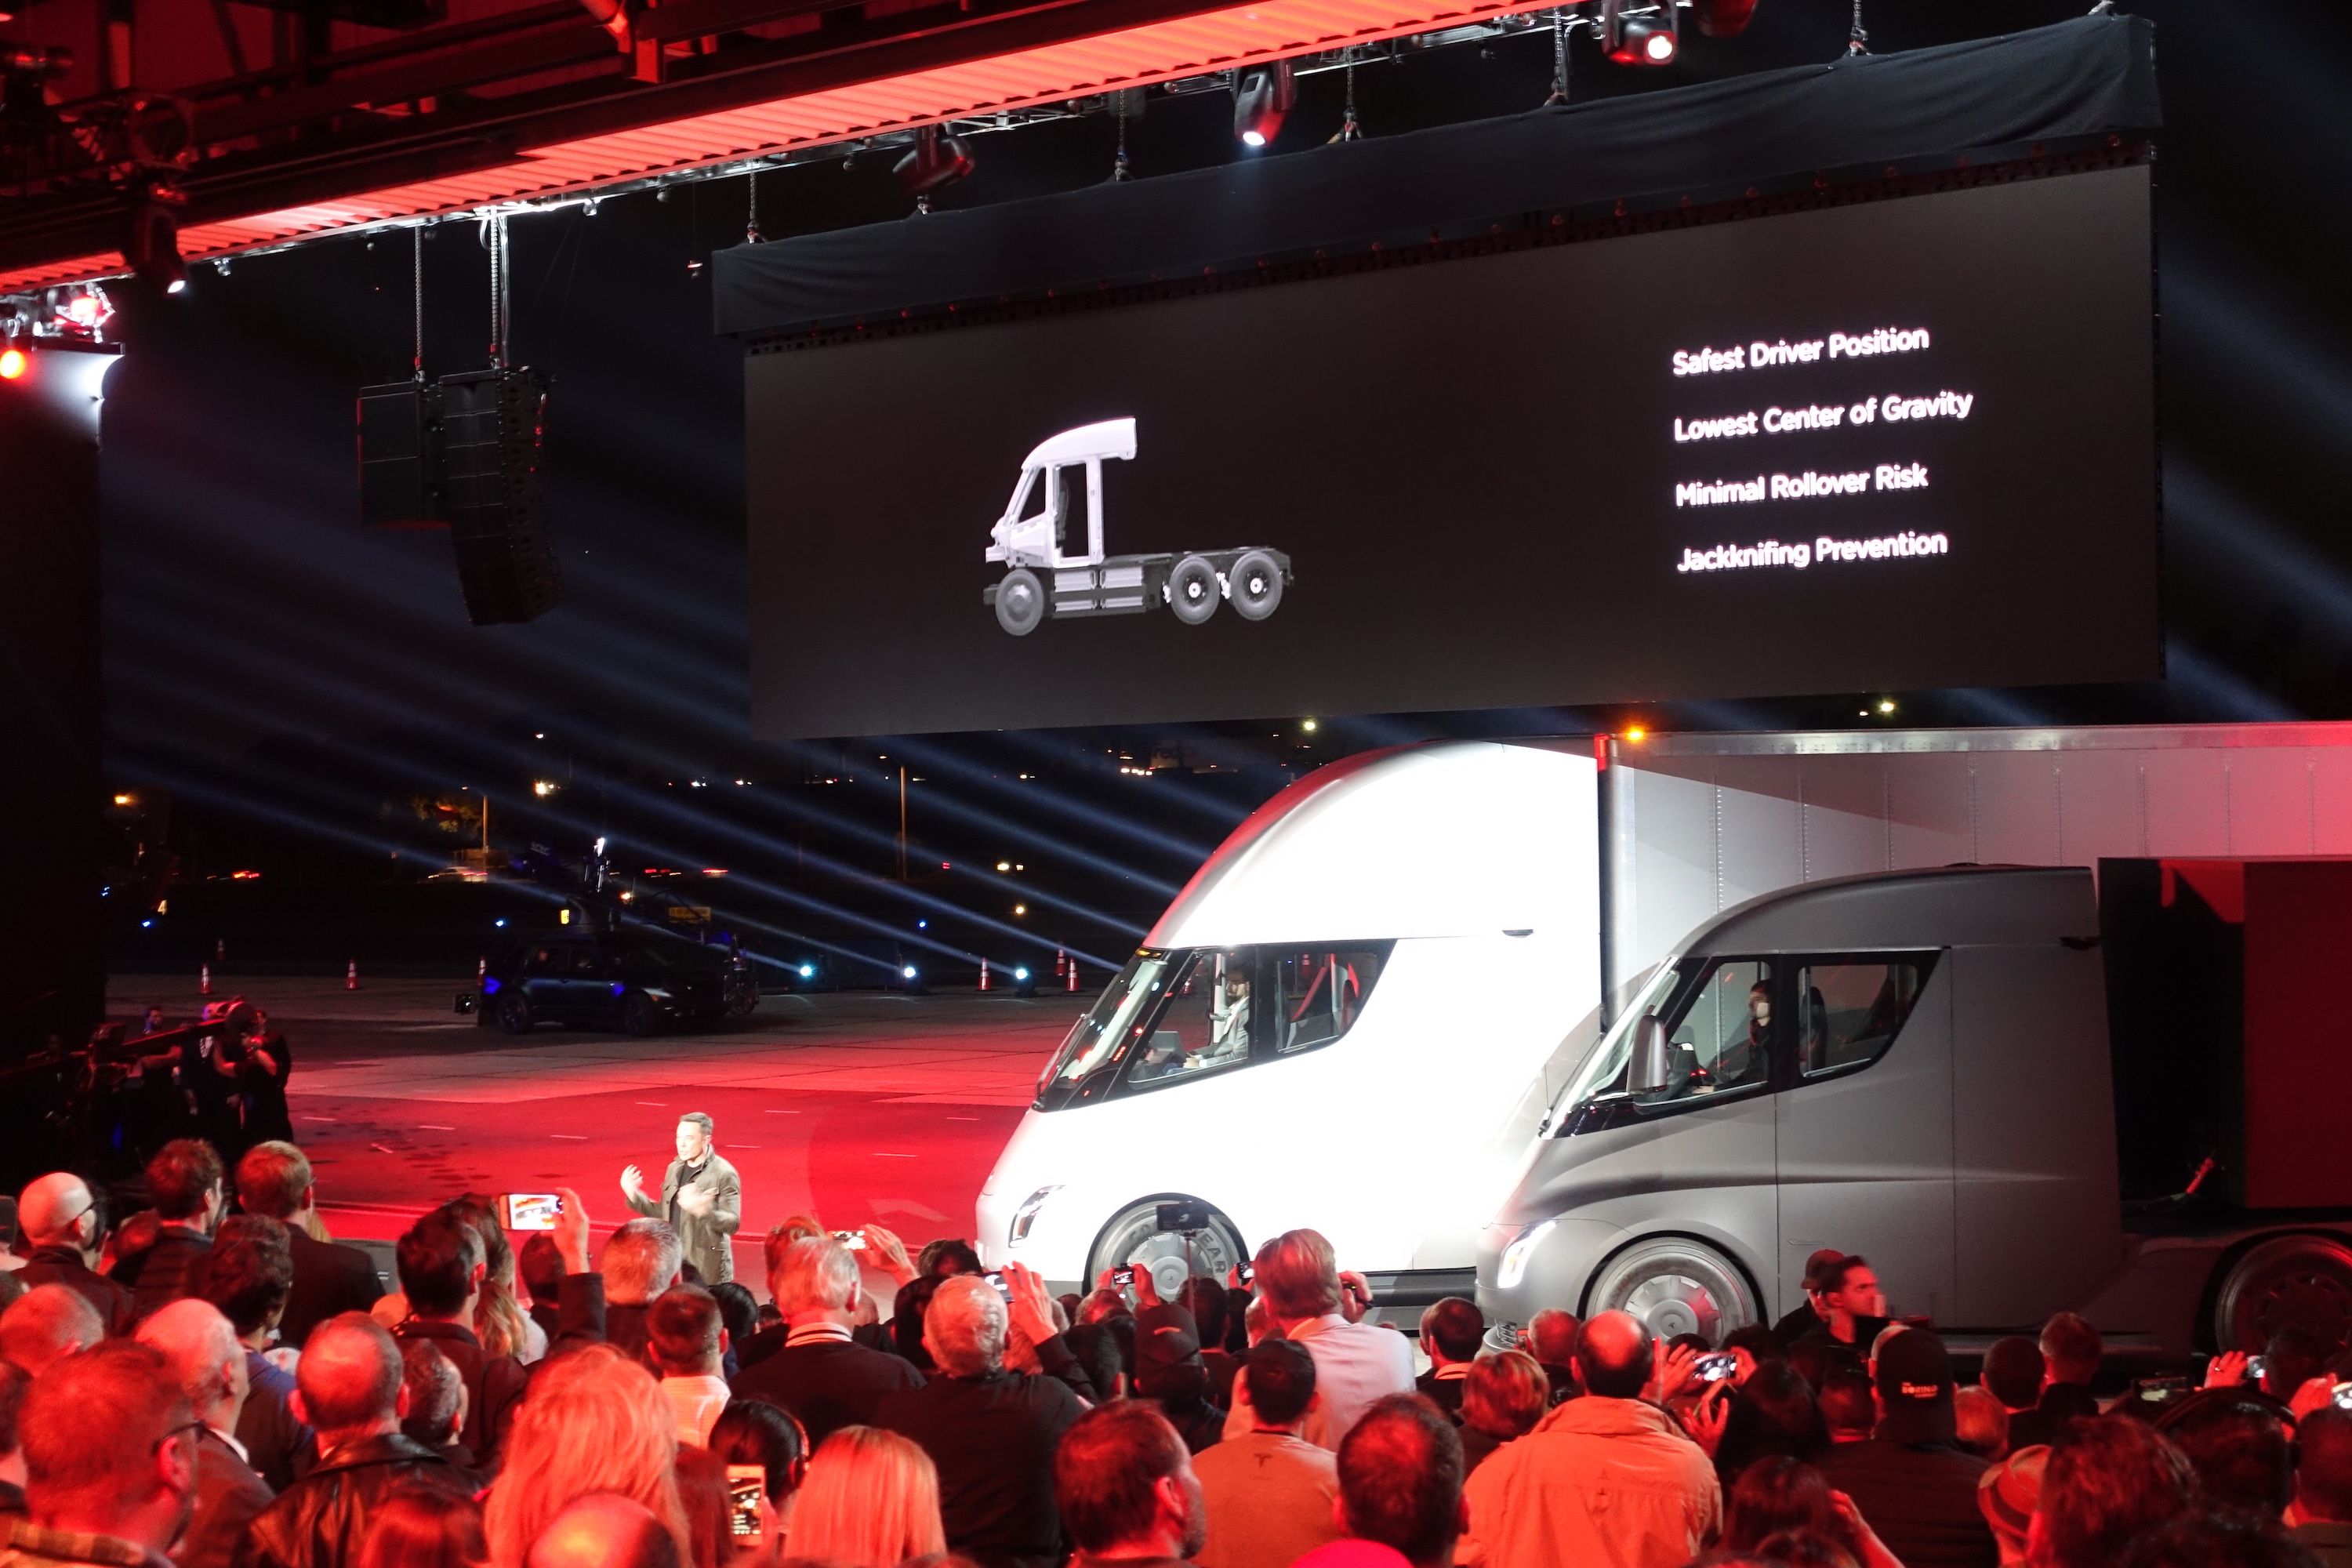 AB InBev has ordered 40 Tesla Semi electric trucks to deliver beer